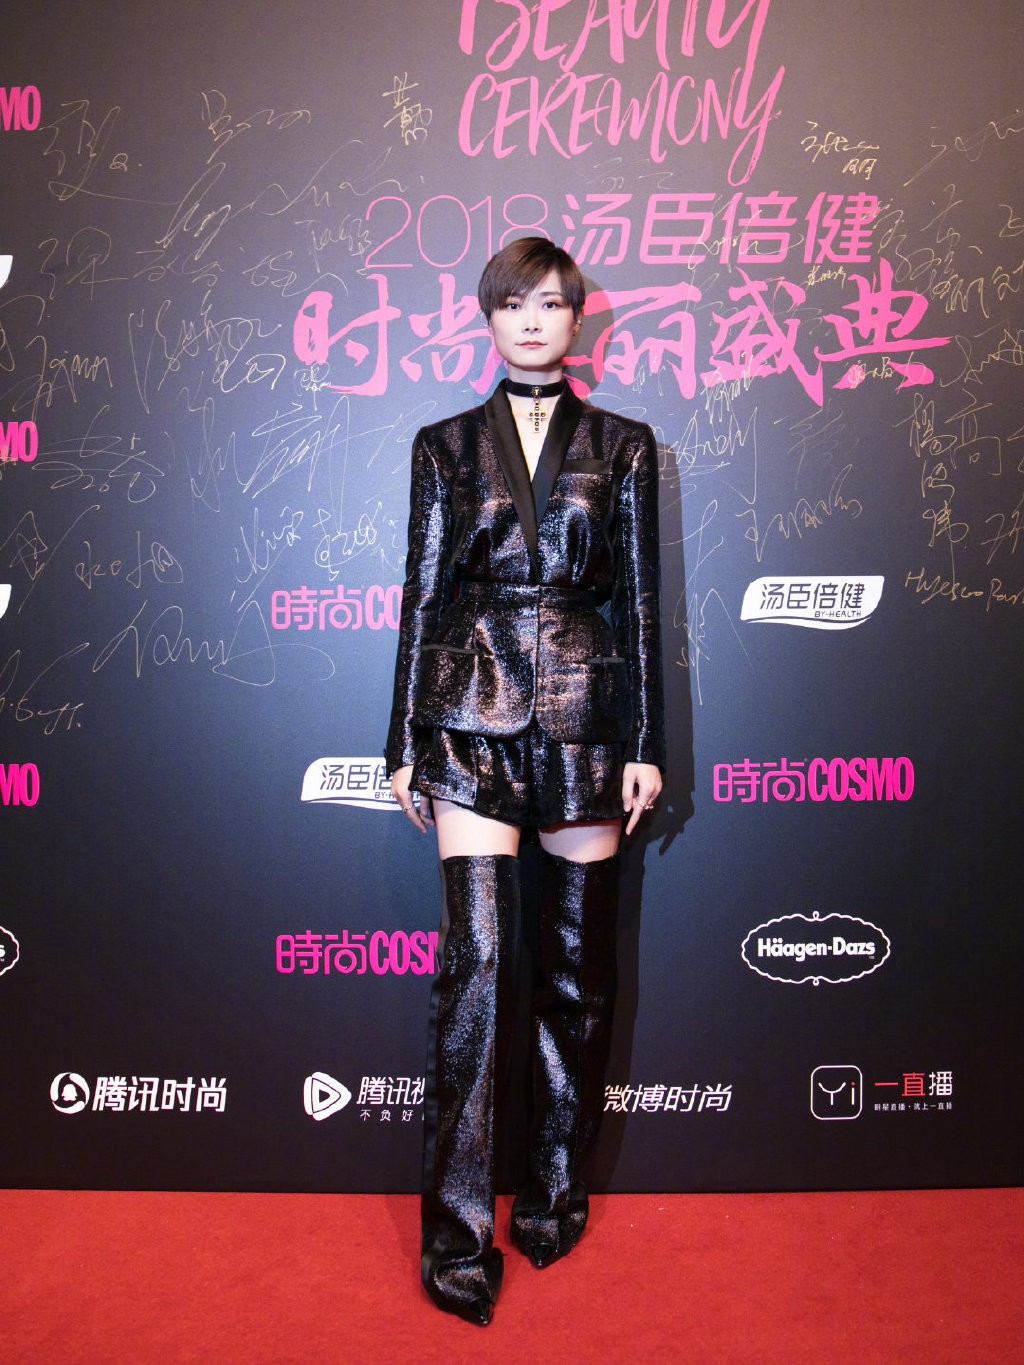 Hottest Cbiz Hot Carpet: Jaejoong Causes Fever Due to the Stunning Appearance, Kim's Secretary Has Hot Pinky - Figure 28.